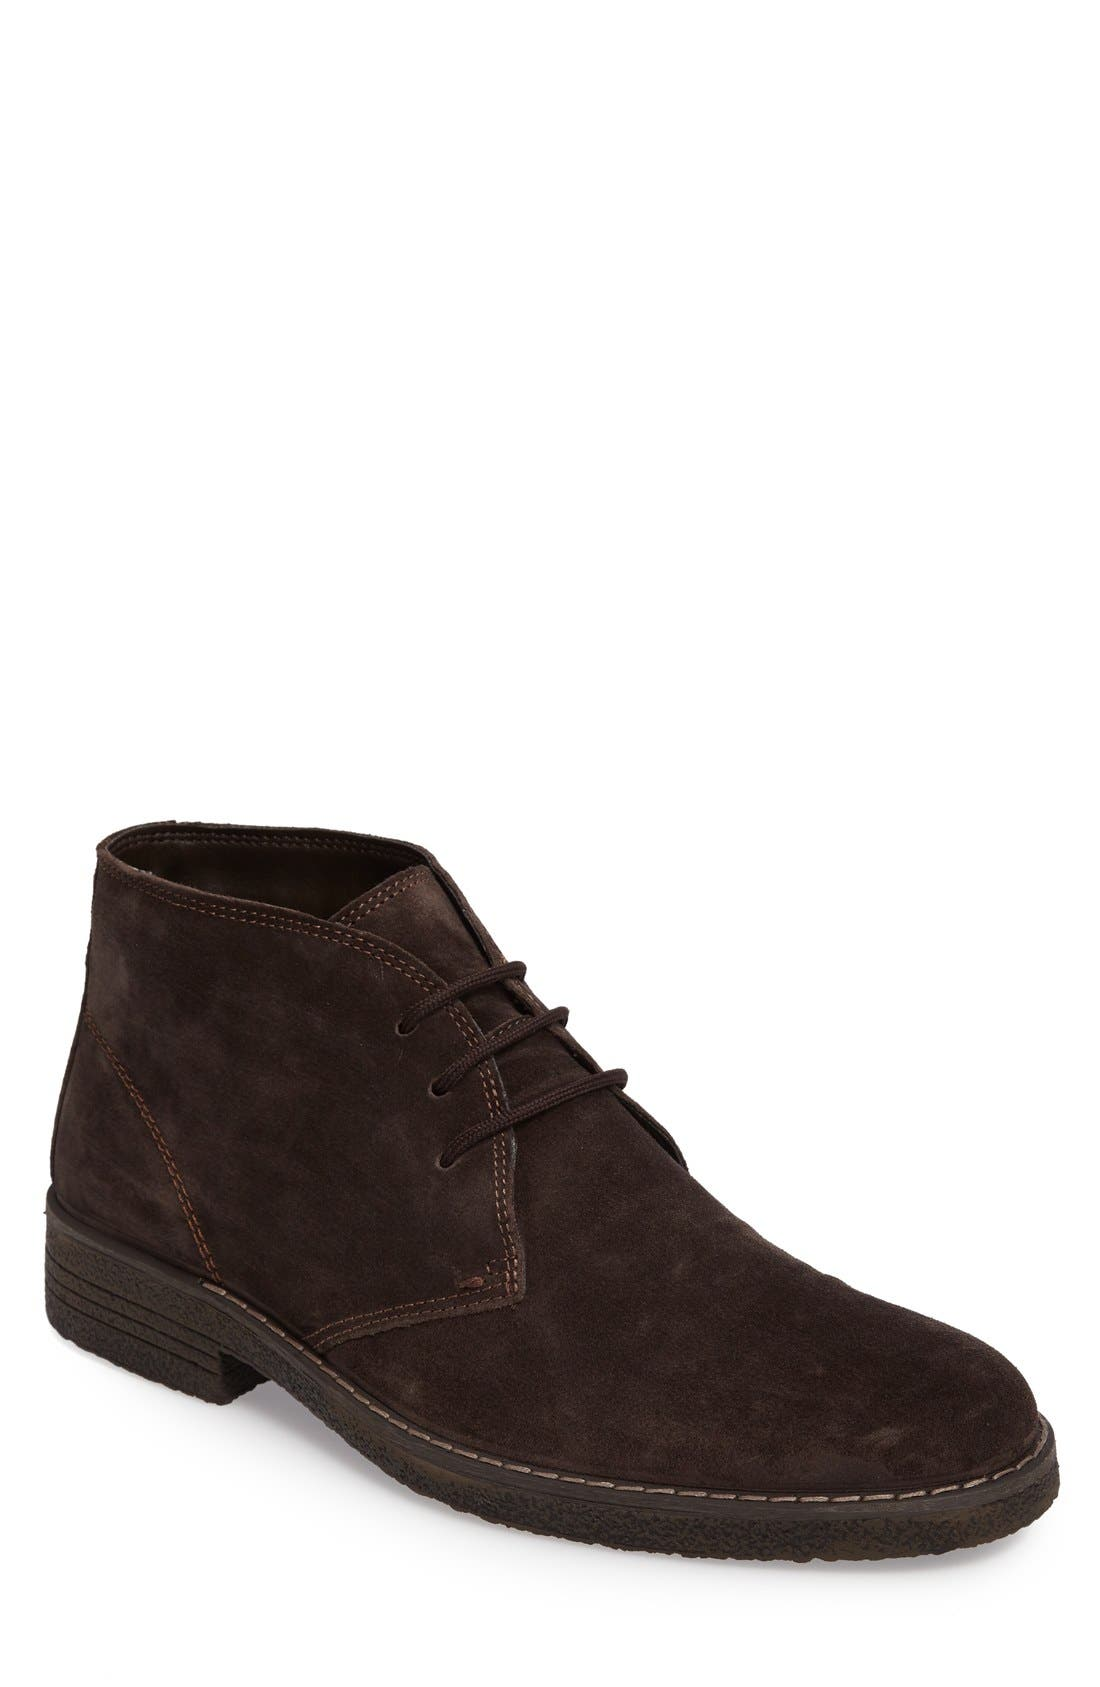 'Tyler' Chukka Boot,                             Main thumbnail 3, color,